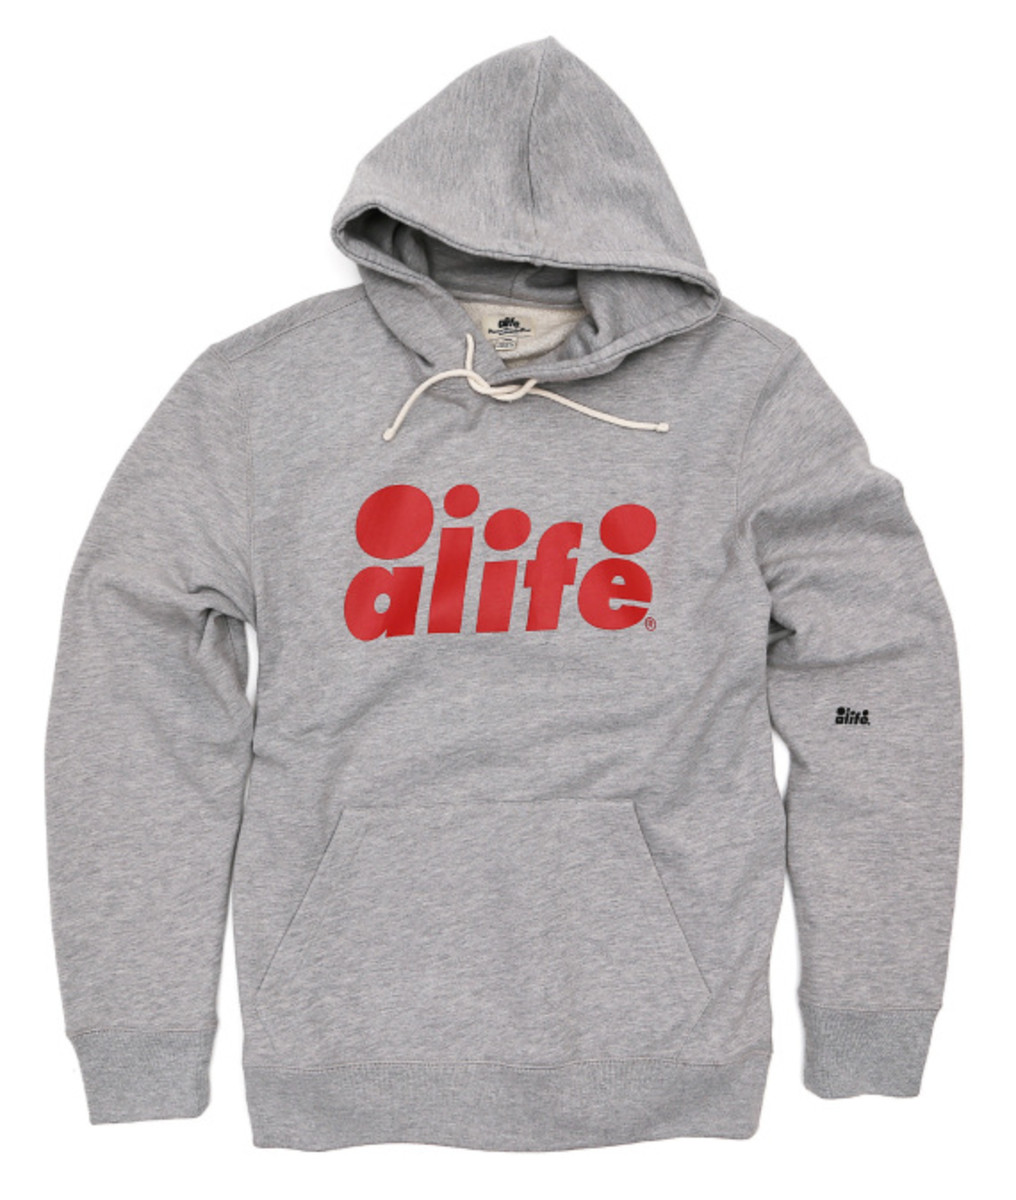 ALIFE - Holiday 2014 Collection Lookbook - 19